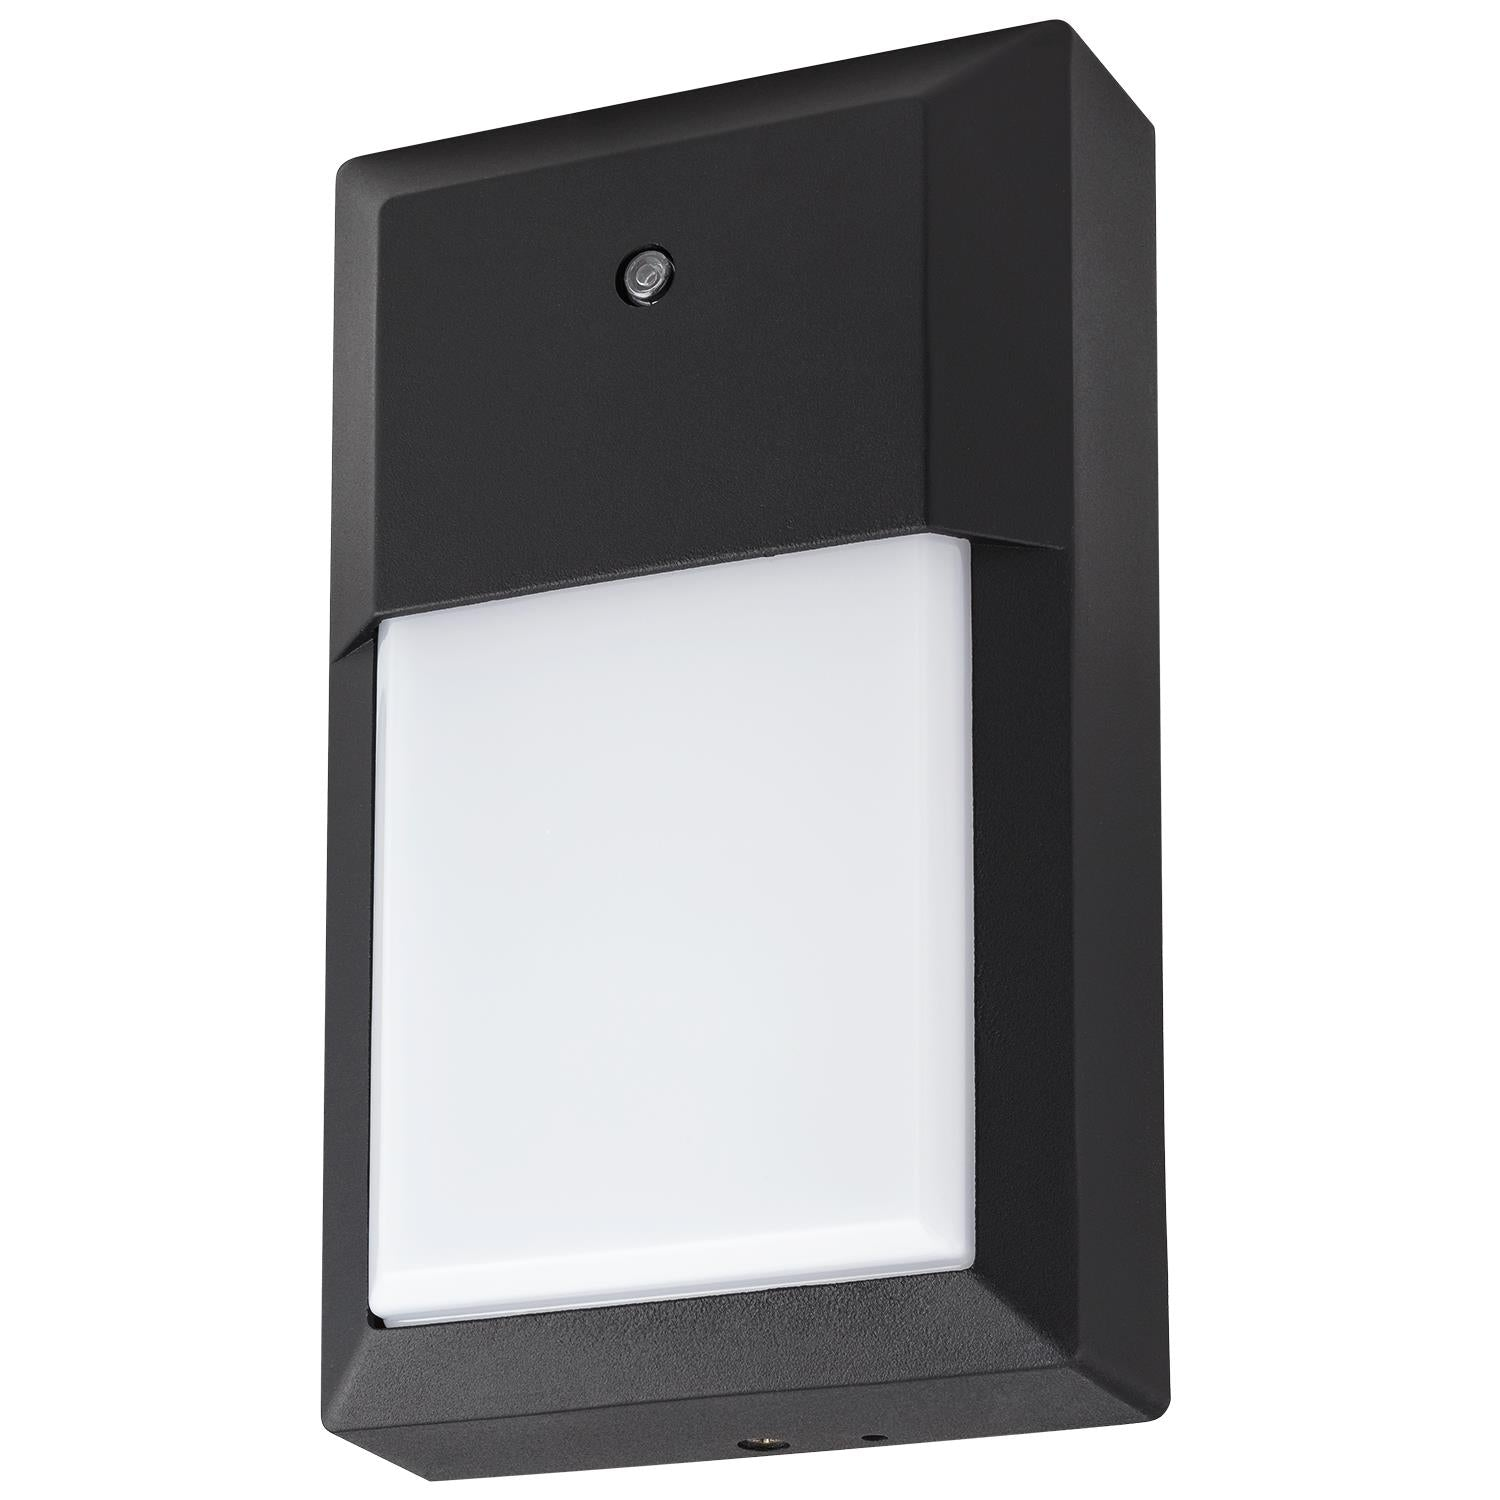 Sunlite LED Slim Wall Pack Outdoor Fixture Built-in Photocell 30K - Warm White